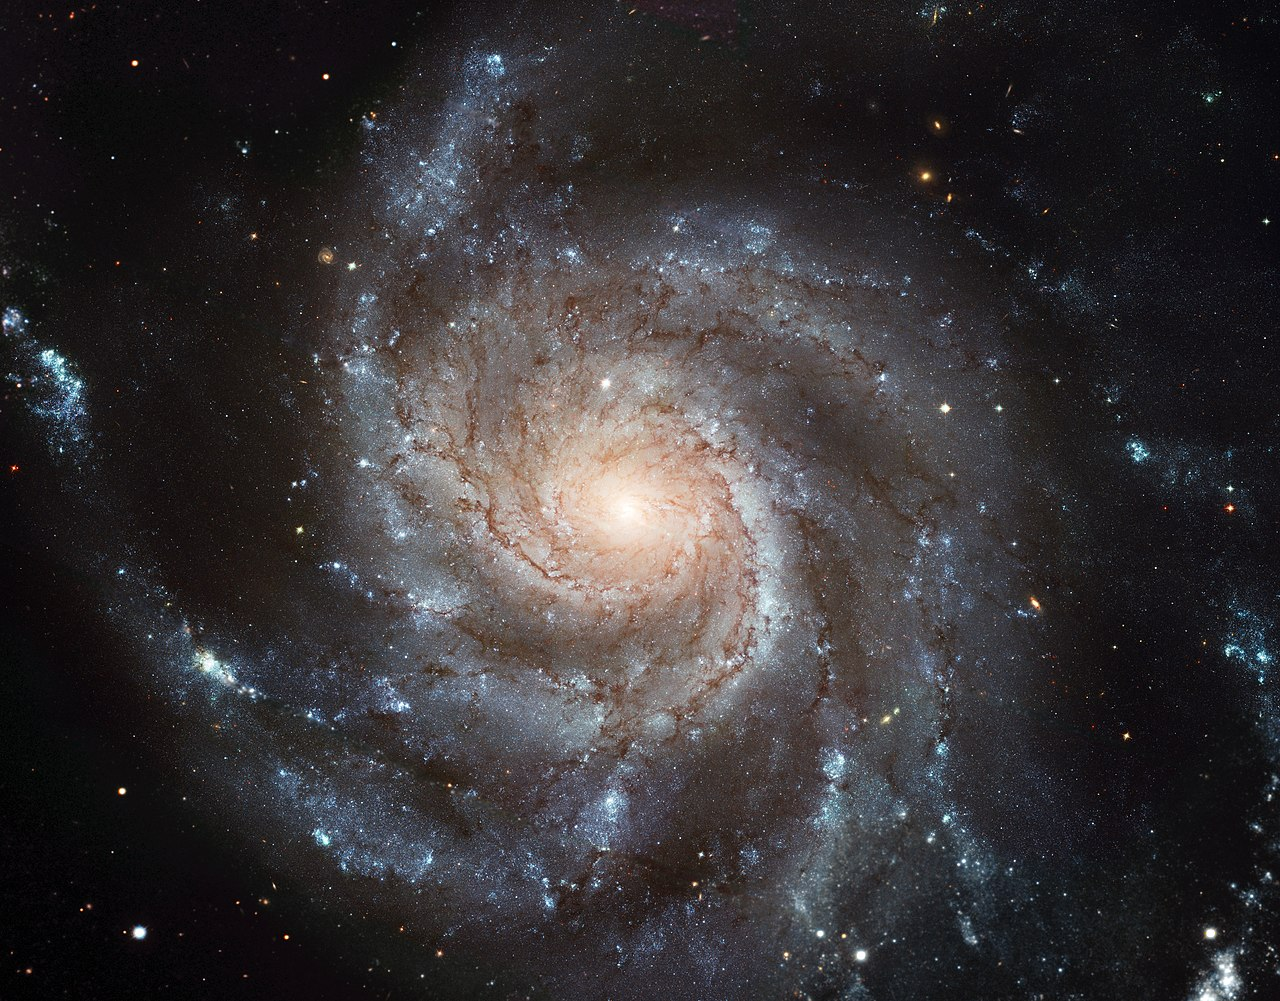 M101 - The Pinwheel Galaxy in Ursa Major. Credit: ESA/NASA/Wikimedia Commons